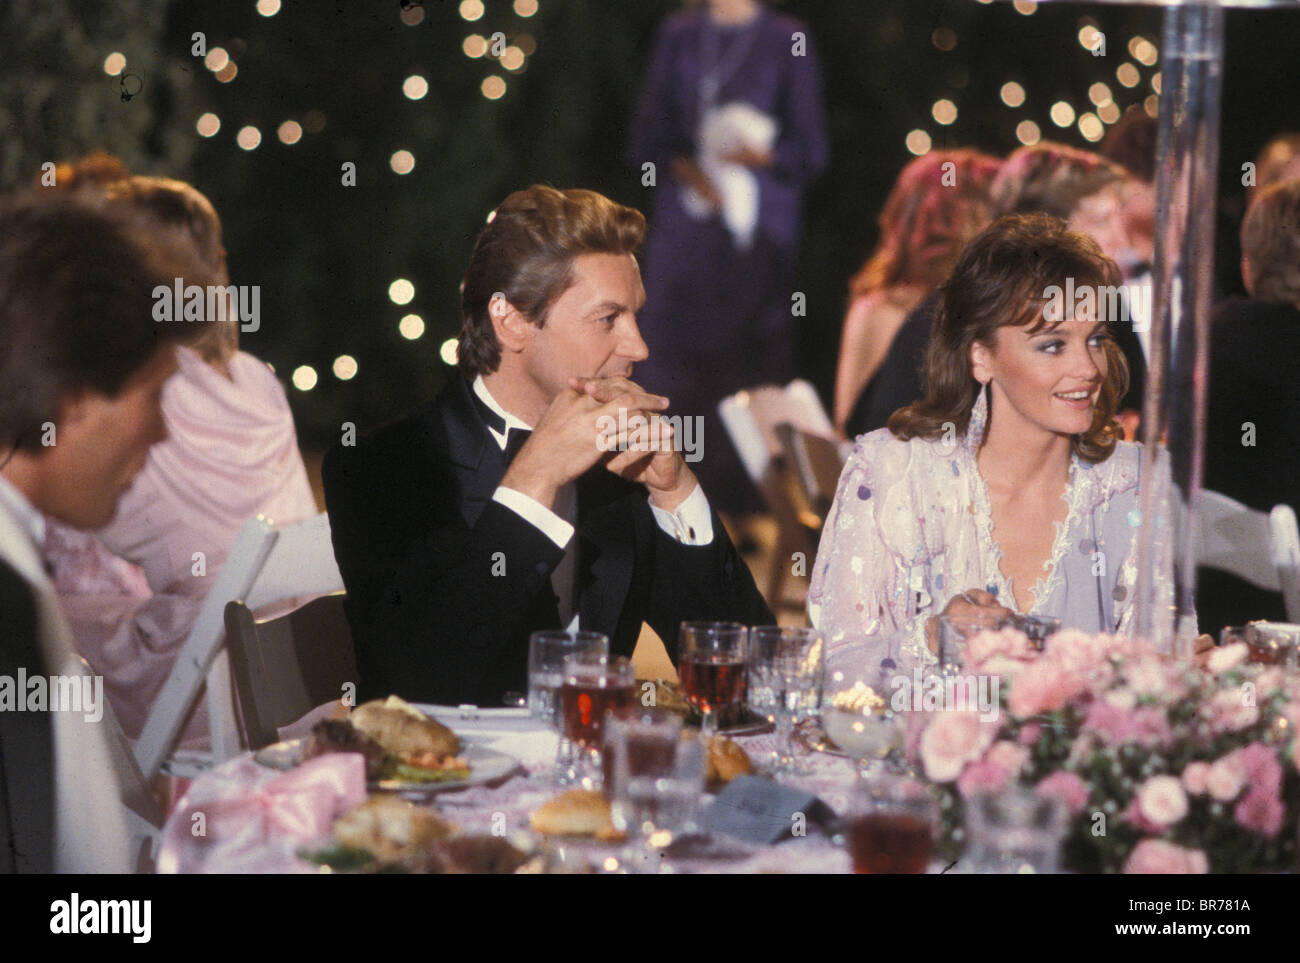 Actor Helmut Berger and actress Pamela Sue Martin on film set of popular soap opera television series Dynasty Hollywood - Stock Image